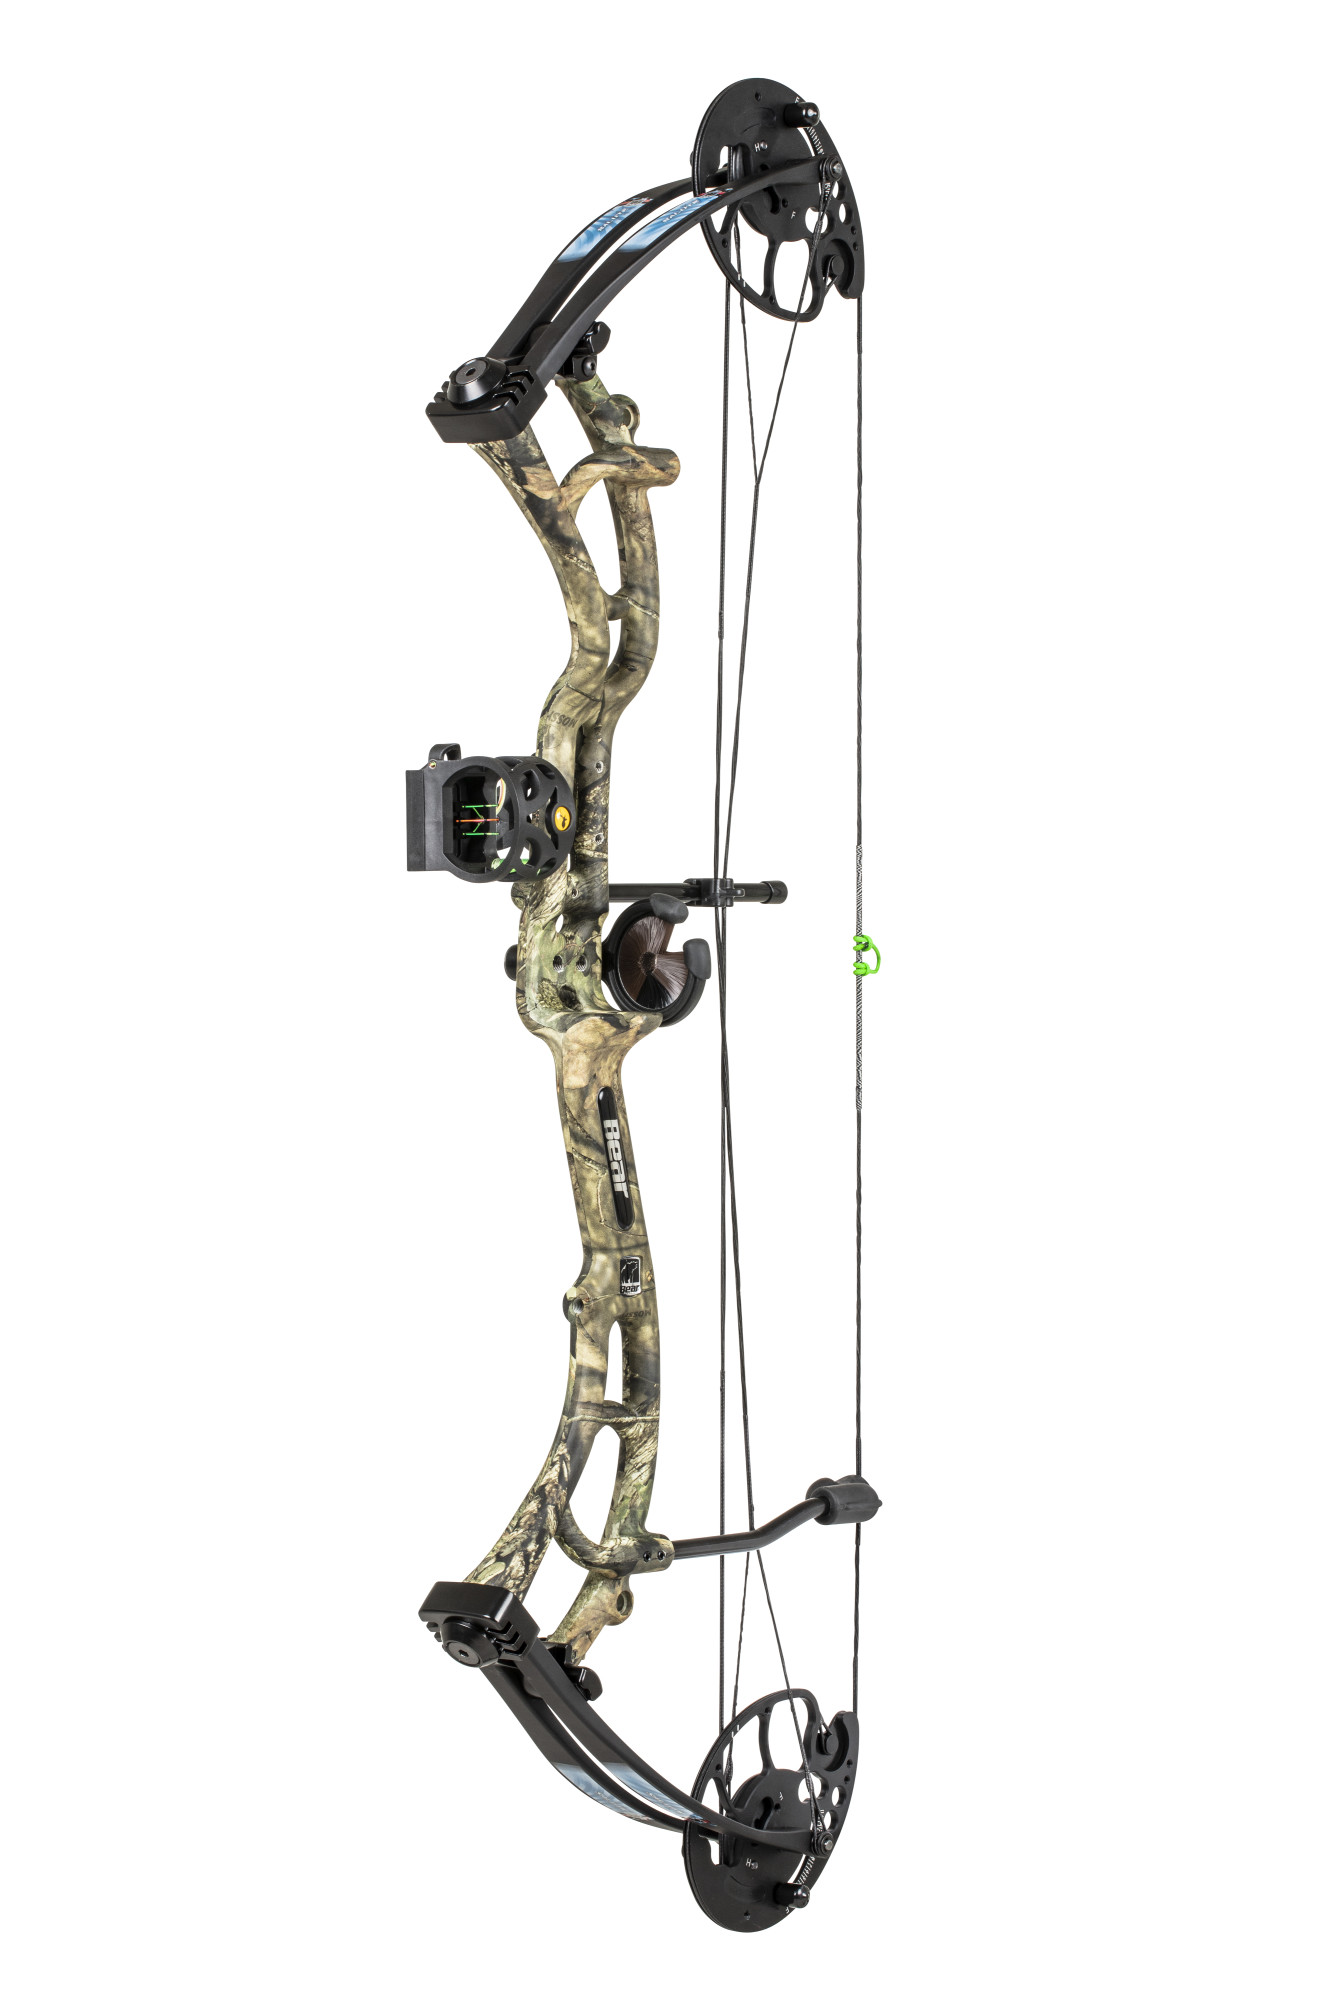 Bear Archery Salute Ready To Hunt Compound Bow Walmart